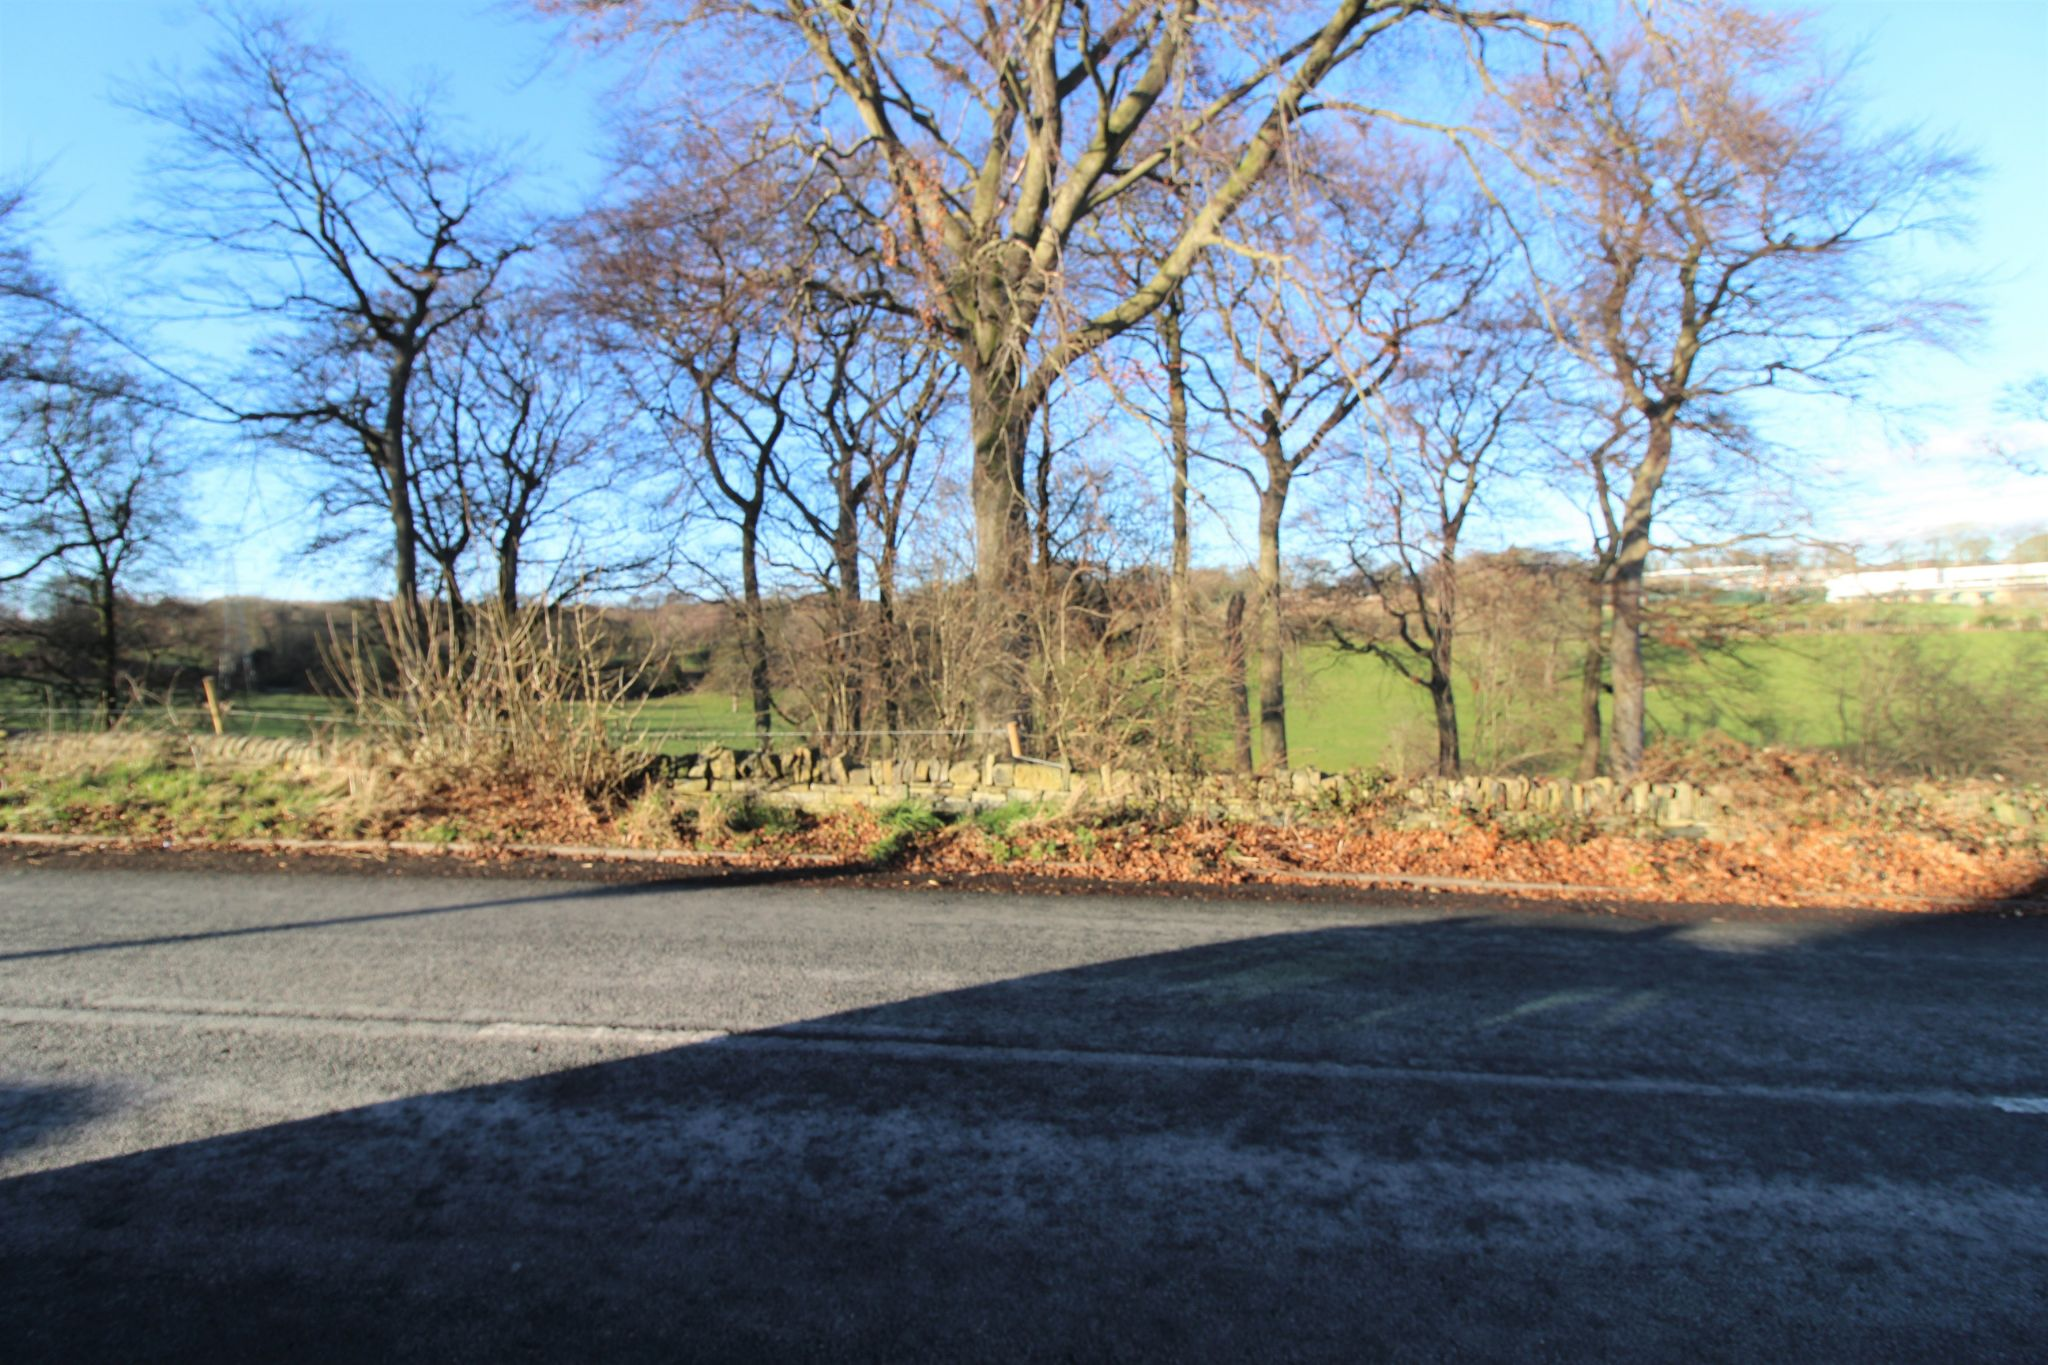 4 bedroom semi-detached bungalow SSTC in Brighouse - View from pavement